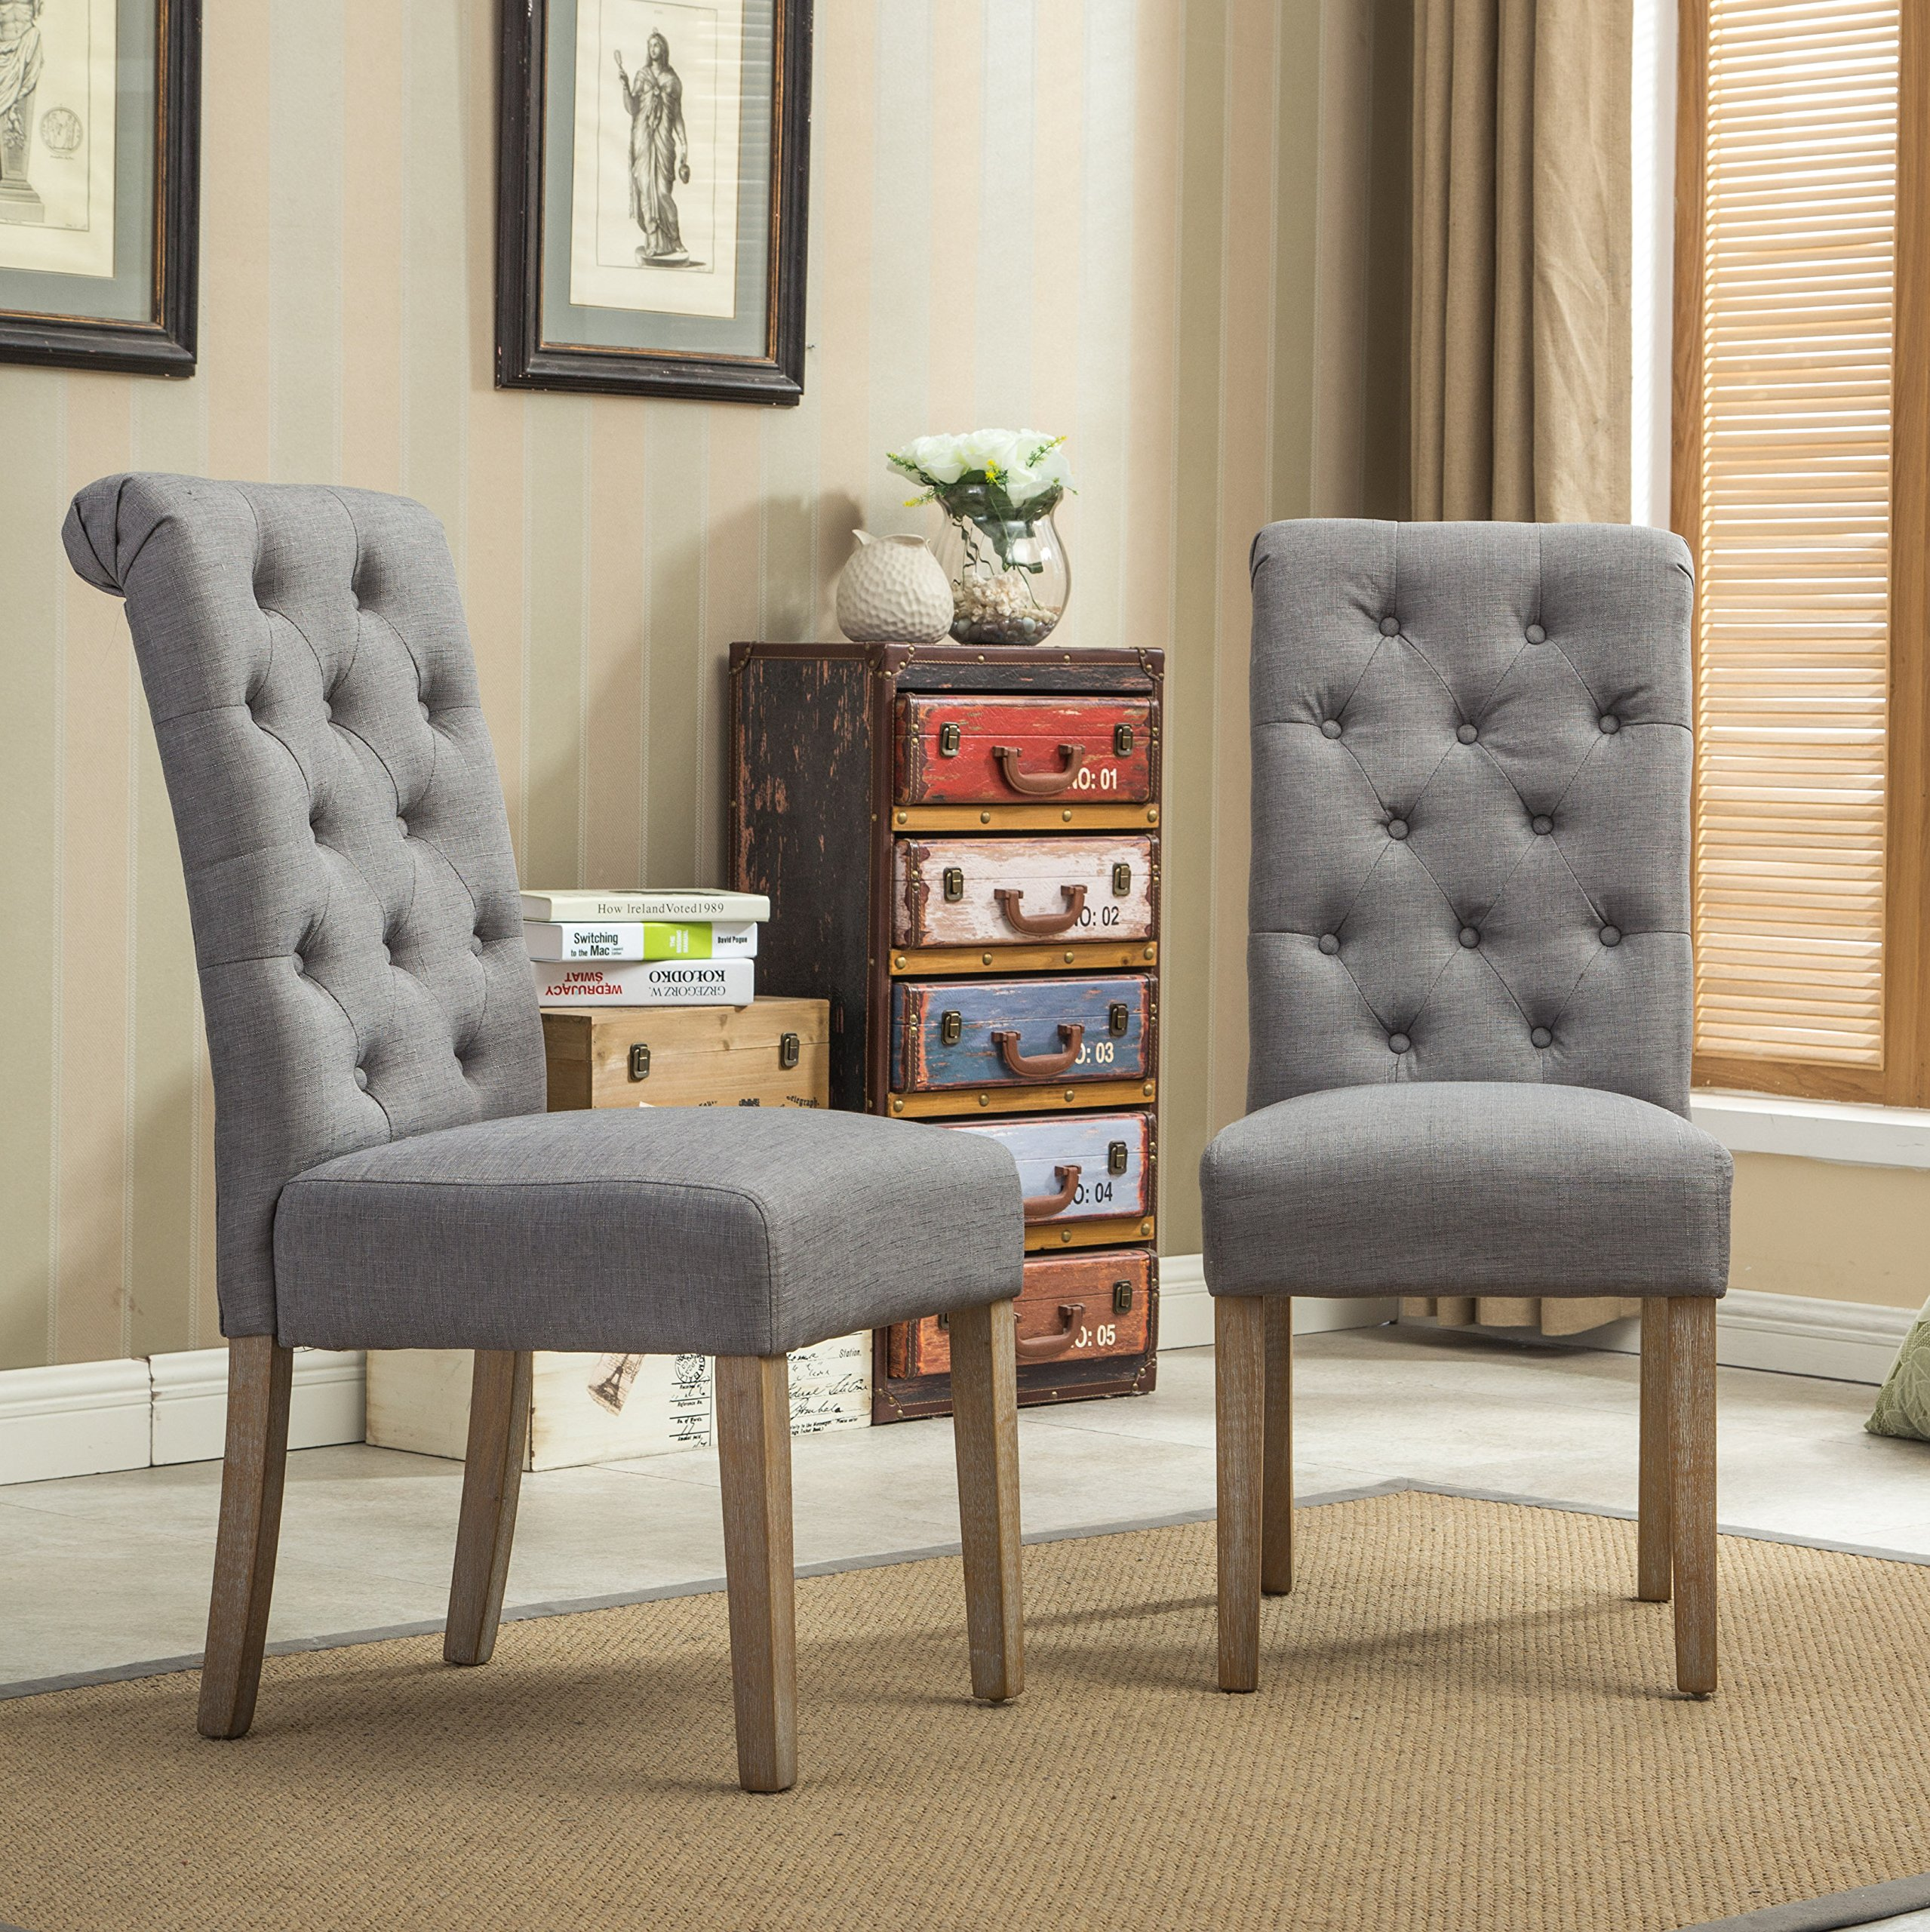 Roundhill Furniture Habit Grey Solid Wood Tufted Parsons Dining Chair (Set of 2), Gray by Roundhill Furniture (Image #2)